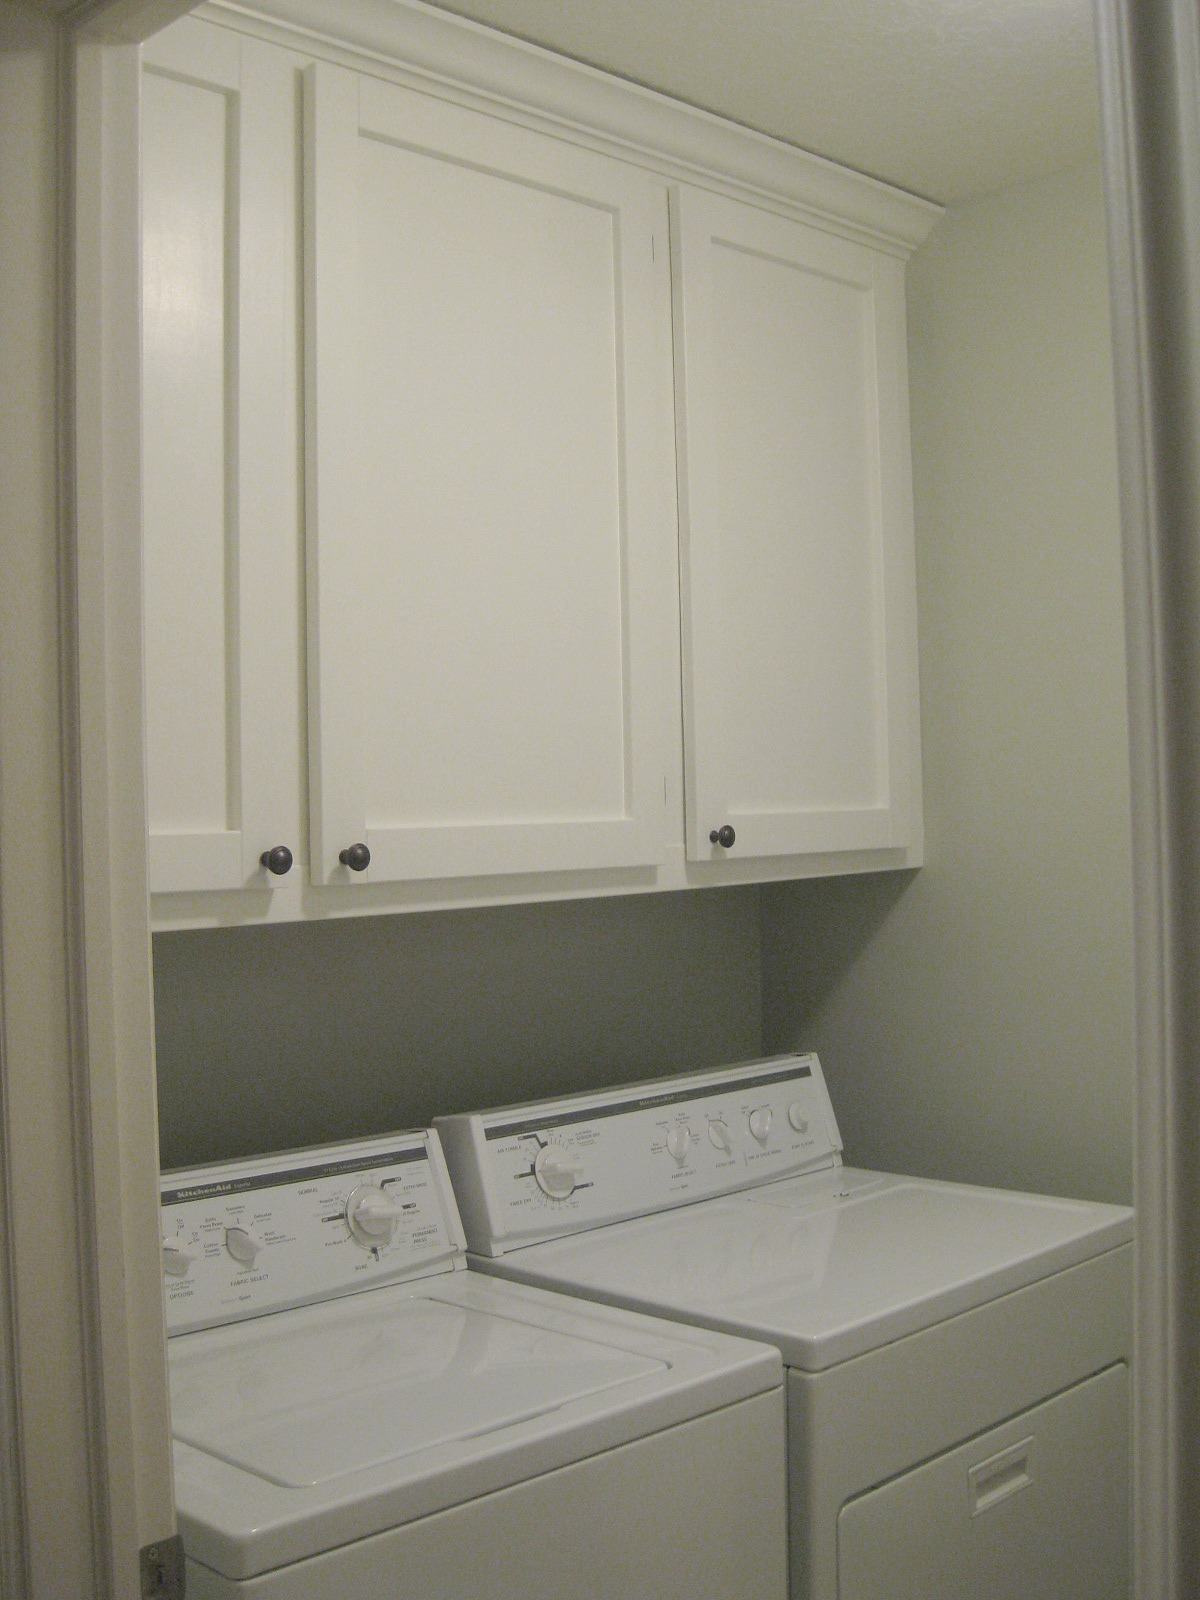 TDA decorating and design: Laundry Room Custom Cabinet Reveal on Laundry Cabinets Ideas  id=26884